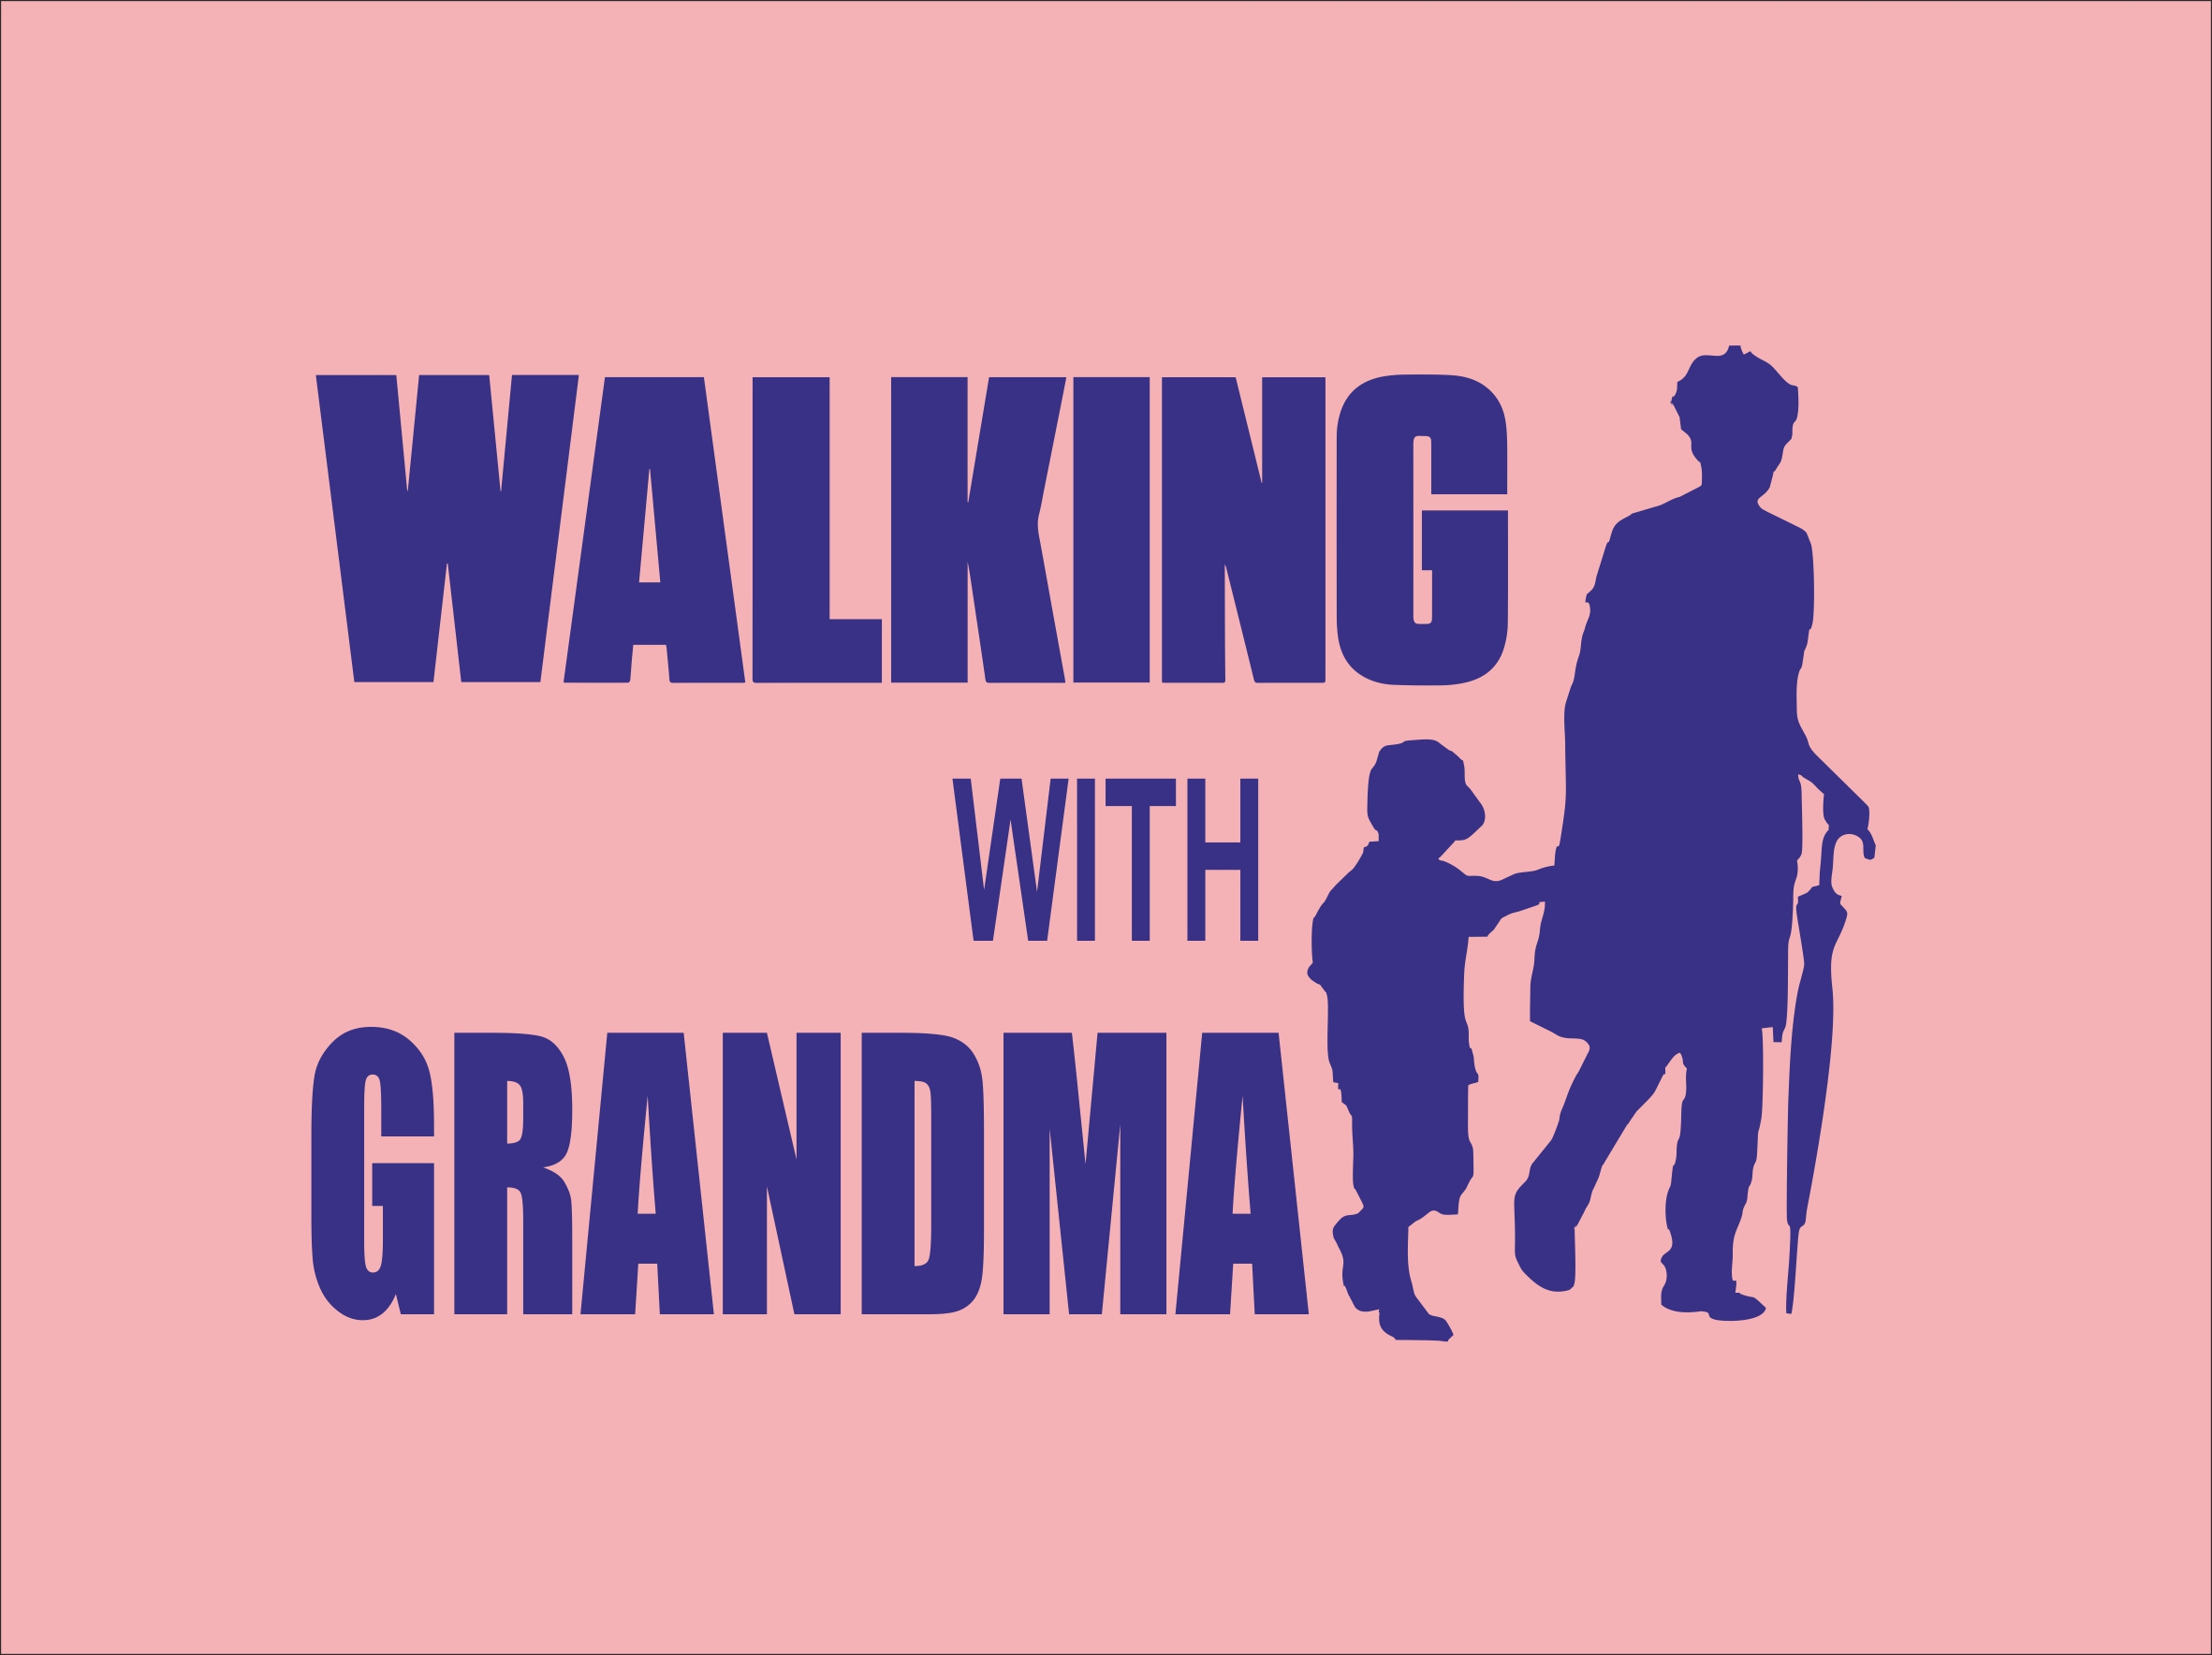 walkingwithgrandma